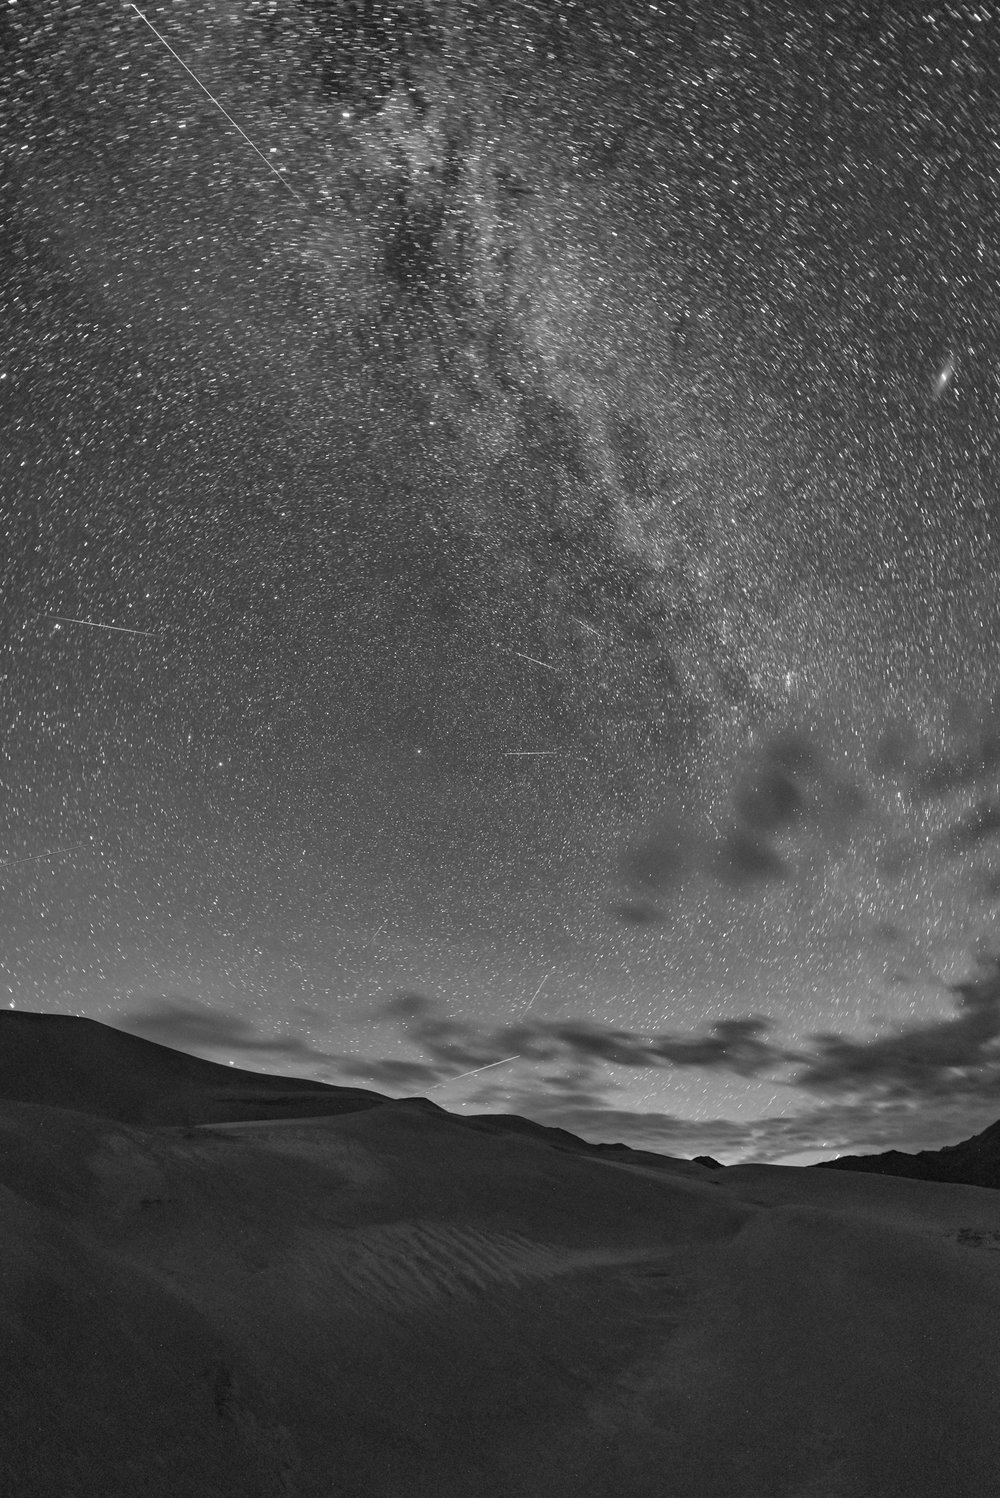 Great-Sand-Dunes-Perseids-Meteor-Demo-Edit.jpg